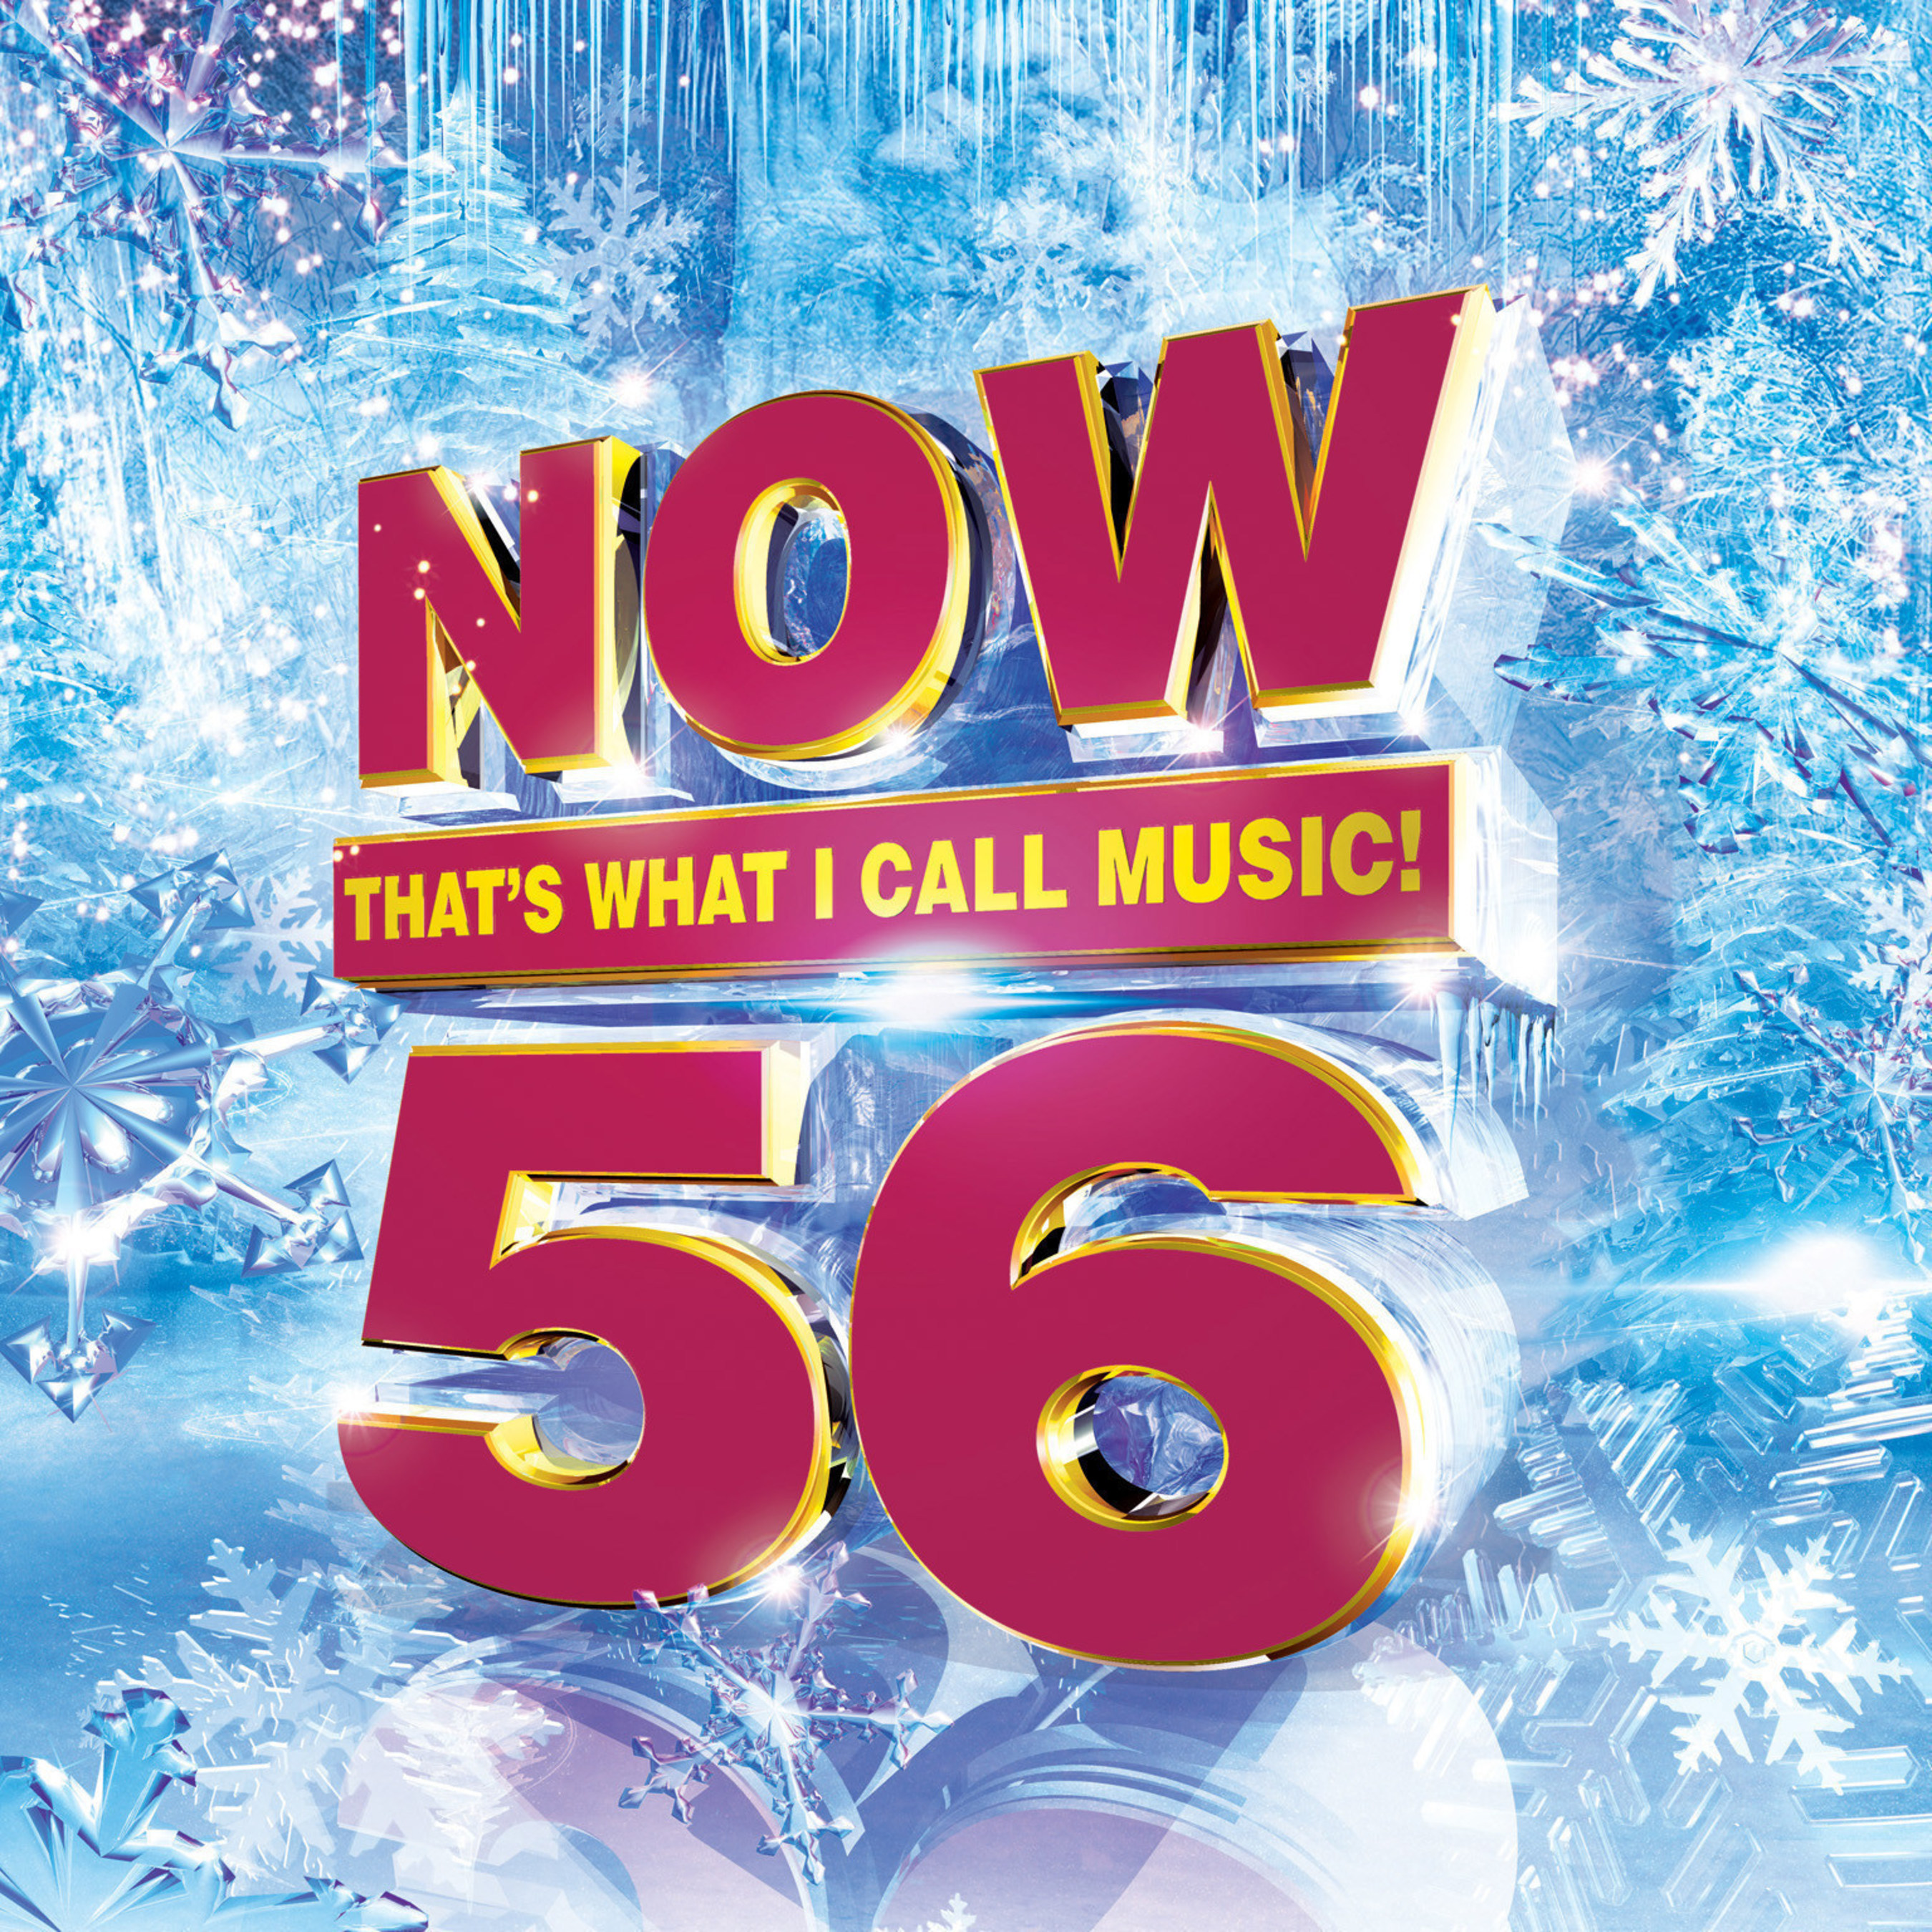 NOW That's What I Call Music! Presents Today's Biggest Hits on NOW That's What I Call Music! Vol. 56